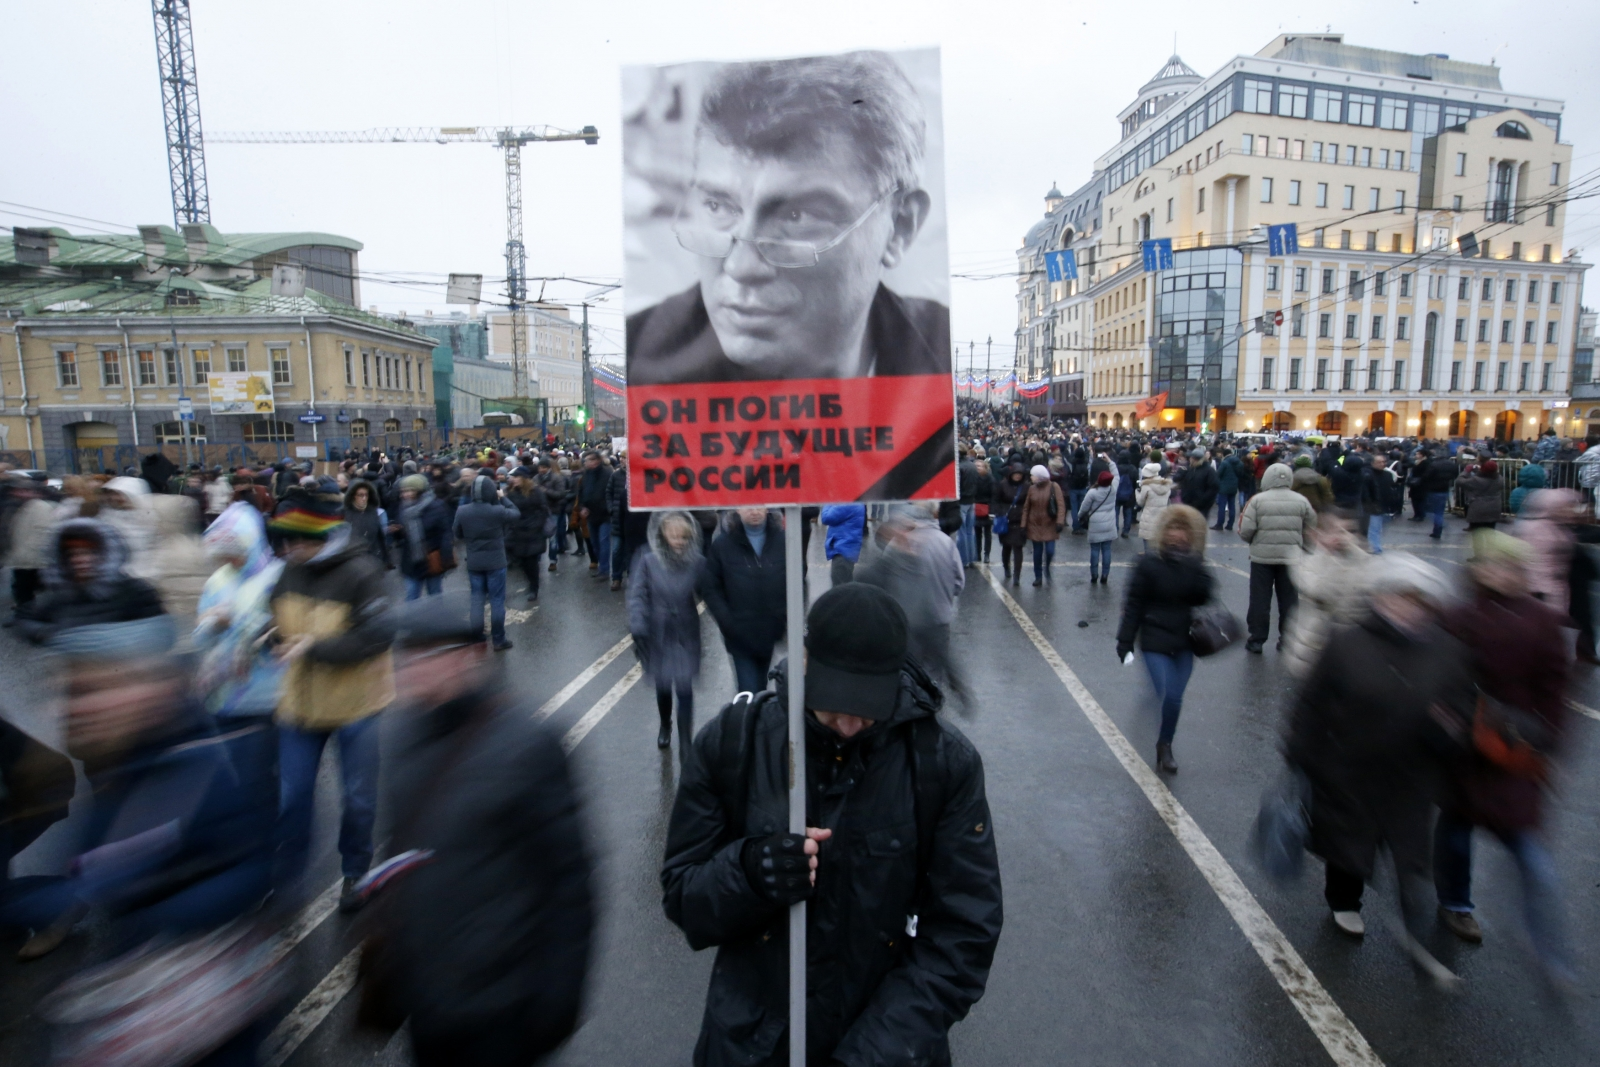 March in memory of Boris Nemtsov